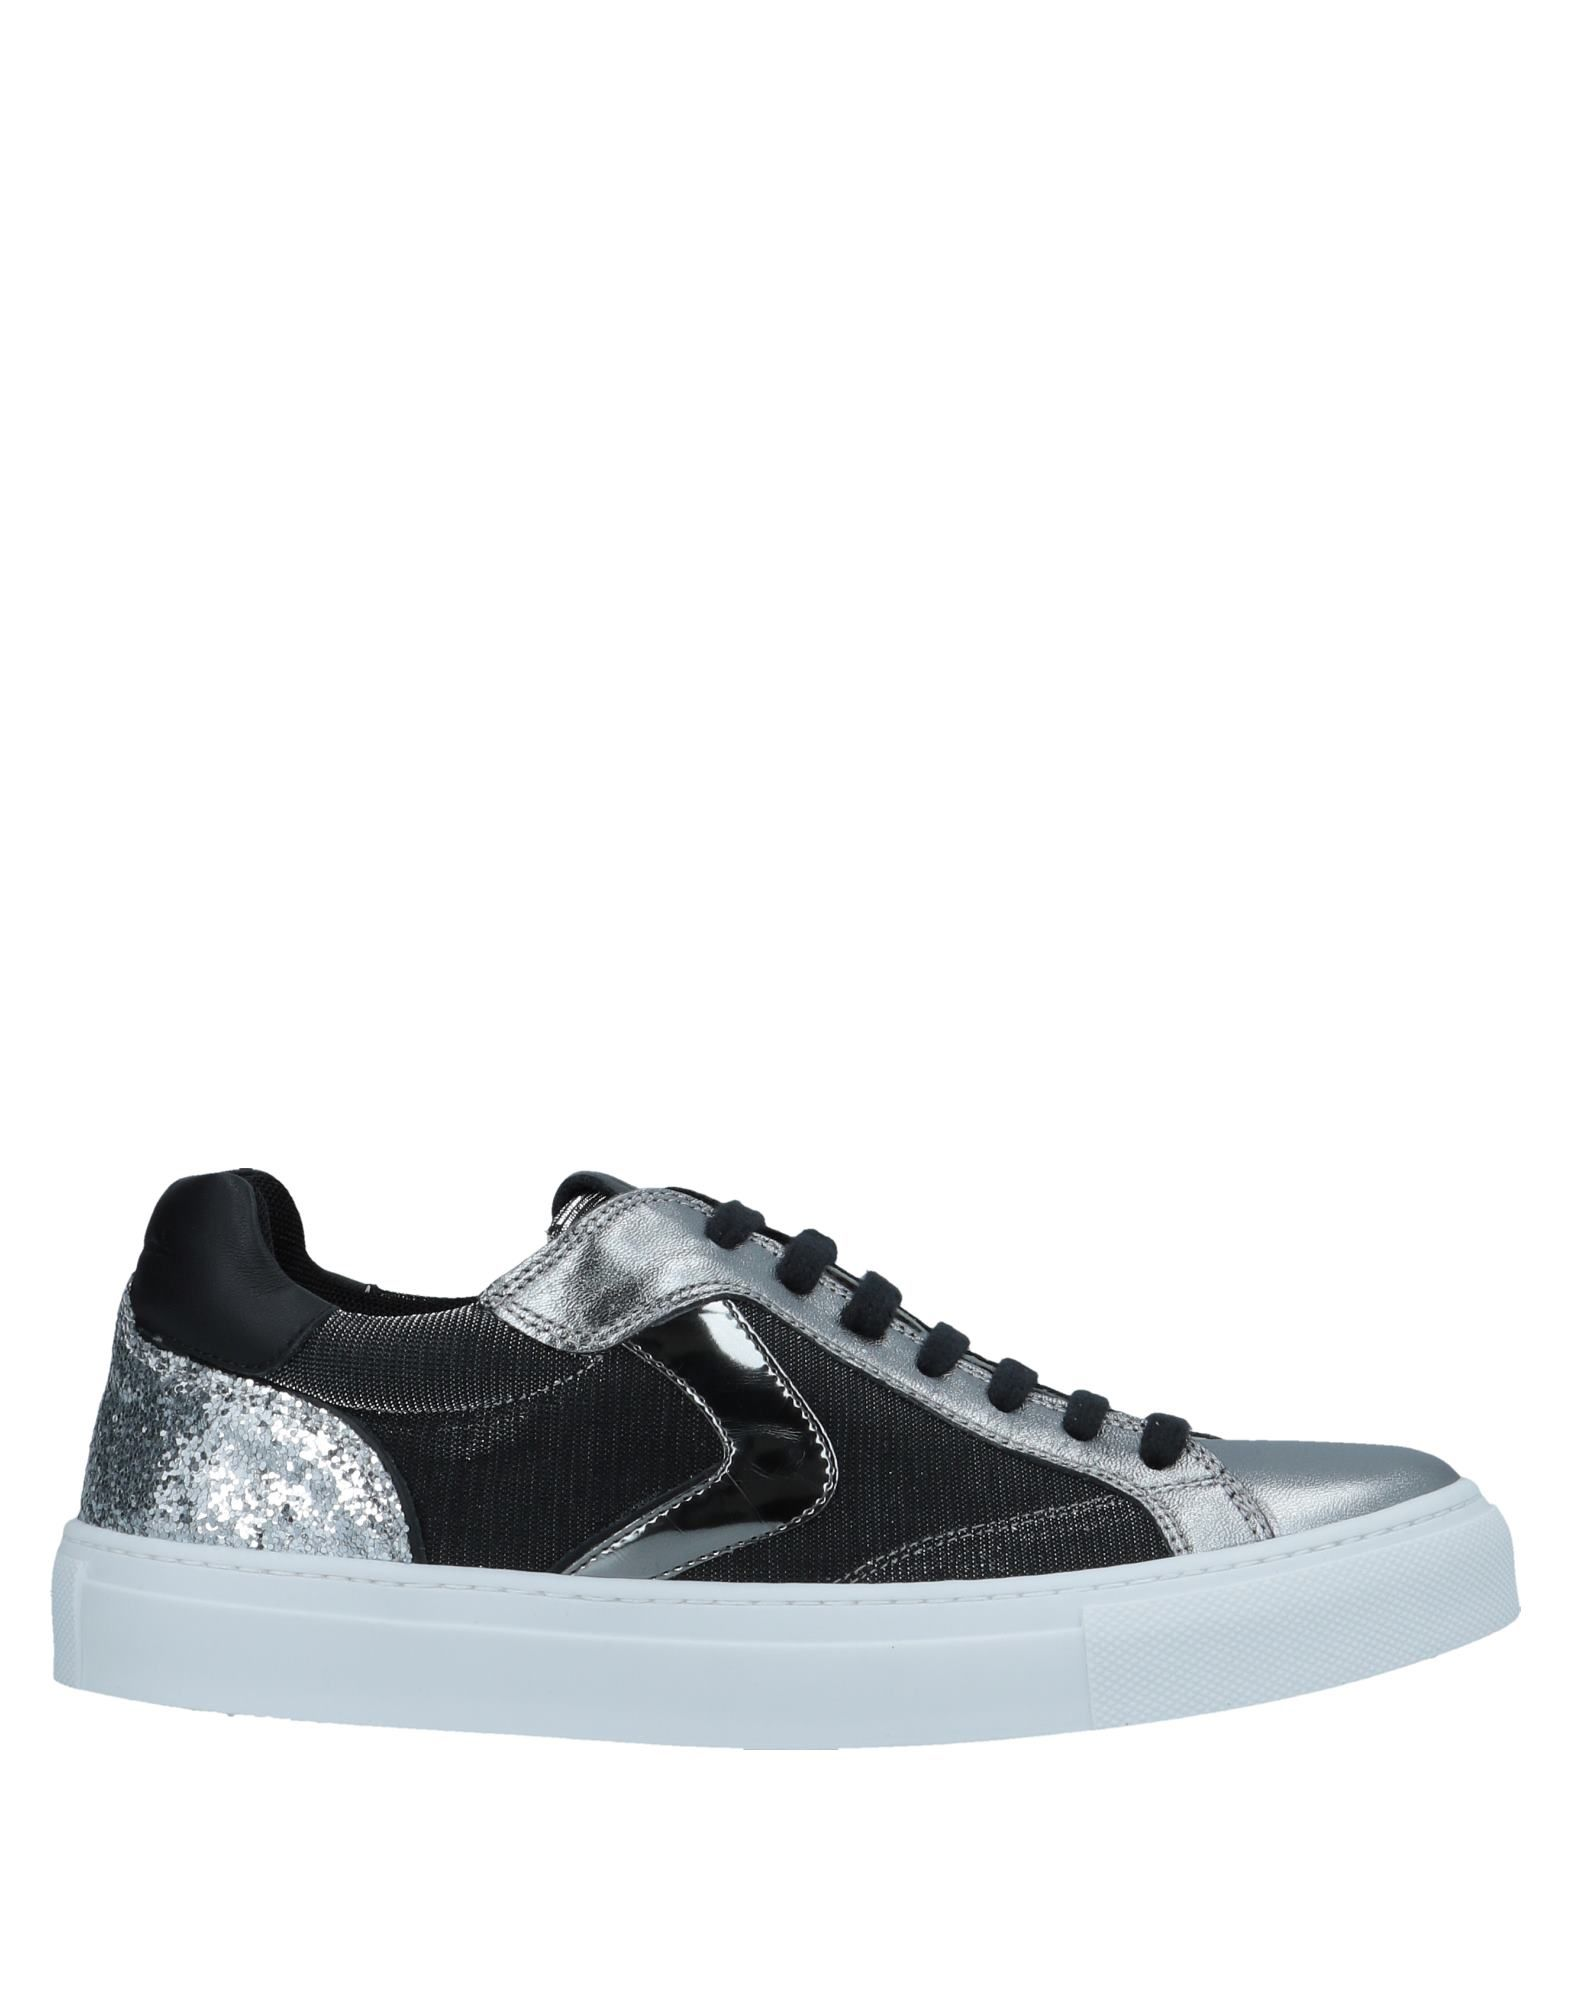 Voile Blanche Sneakers - Women Voile Blanche Sneakers online on 11580795WH  United Kingdom - 11580795WH on 04e7d1